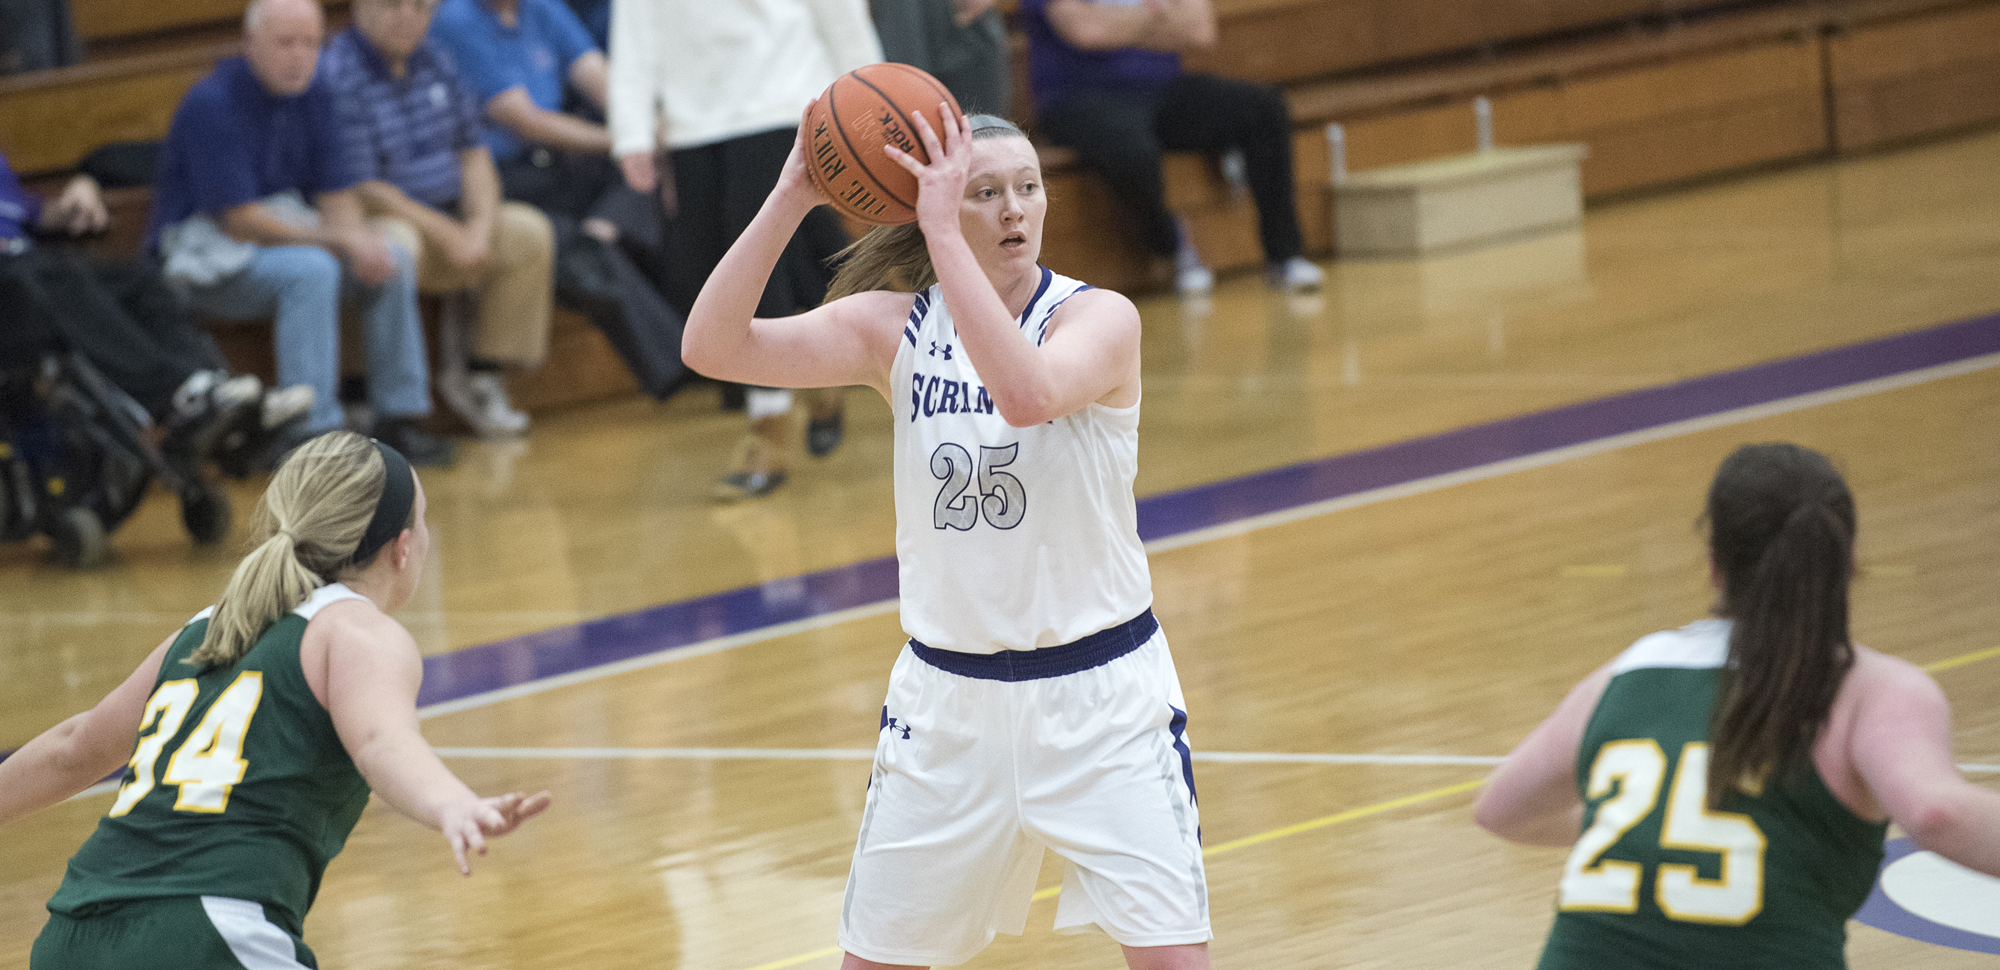 Senior Katie Feehery scored in double-figures in both games as the women's basketball team won twice last week.